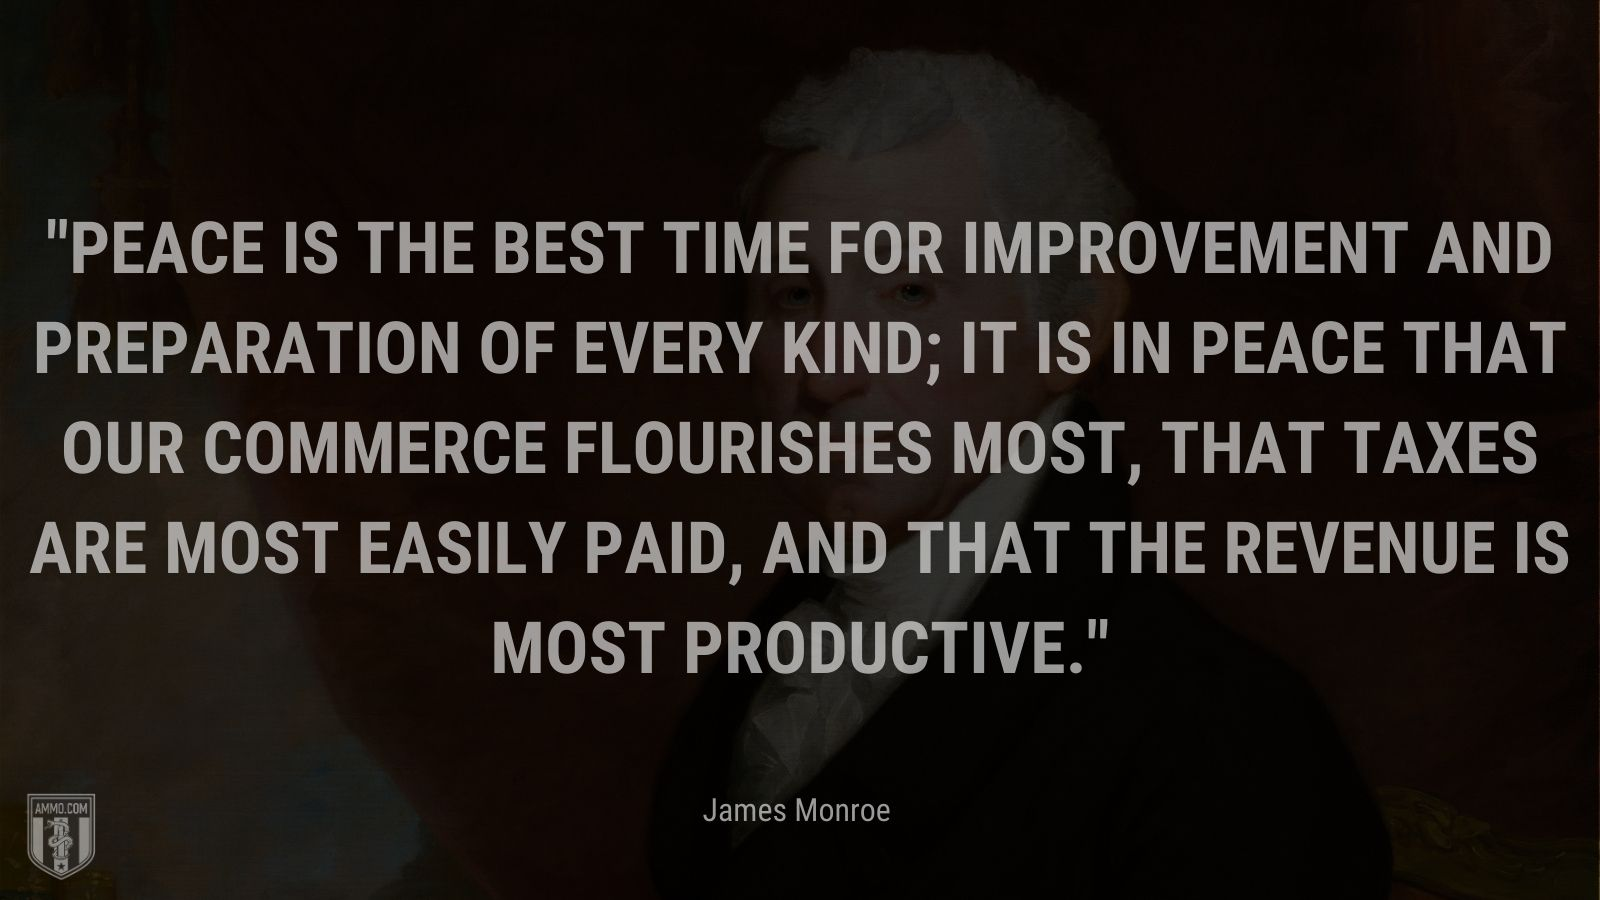 """""""Peace is the best time for improvement and preparation of every kind; it is in peace that our commerce flourishes most, that taxes are most easily paid, and that the revenue is most productive."""" - James Monroe"""